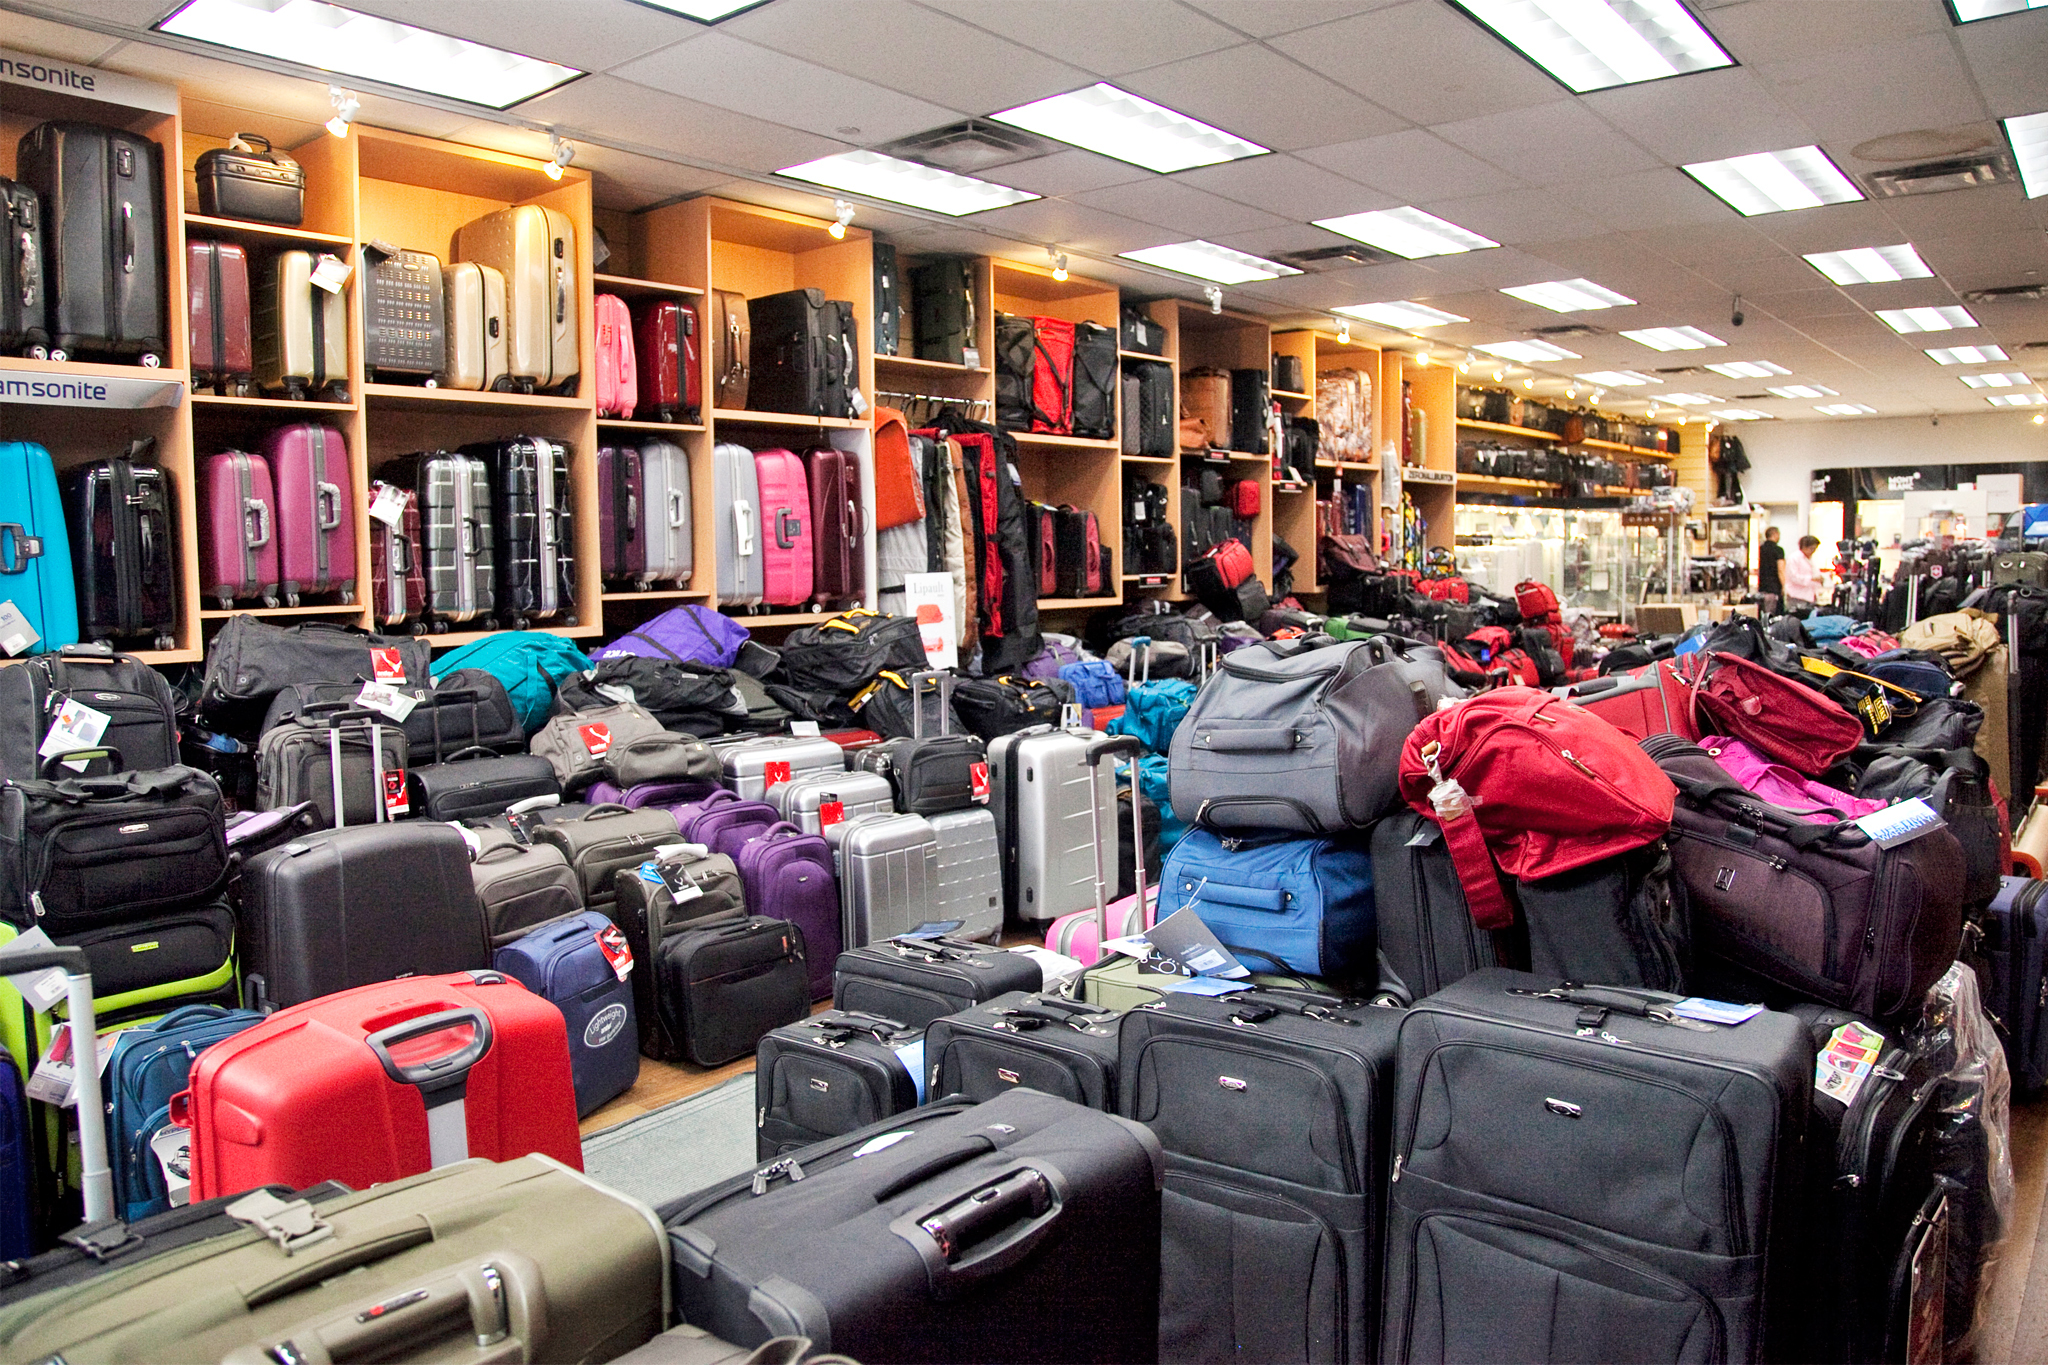 Bag Stores Sydney Altman Luggage Shopping In Lower East Side New York